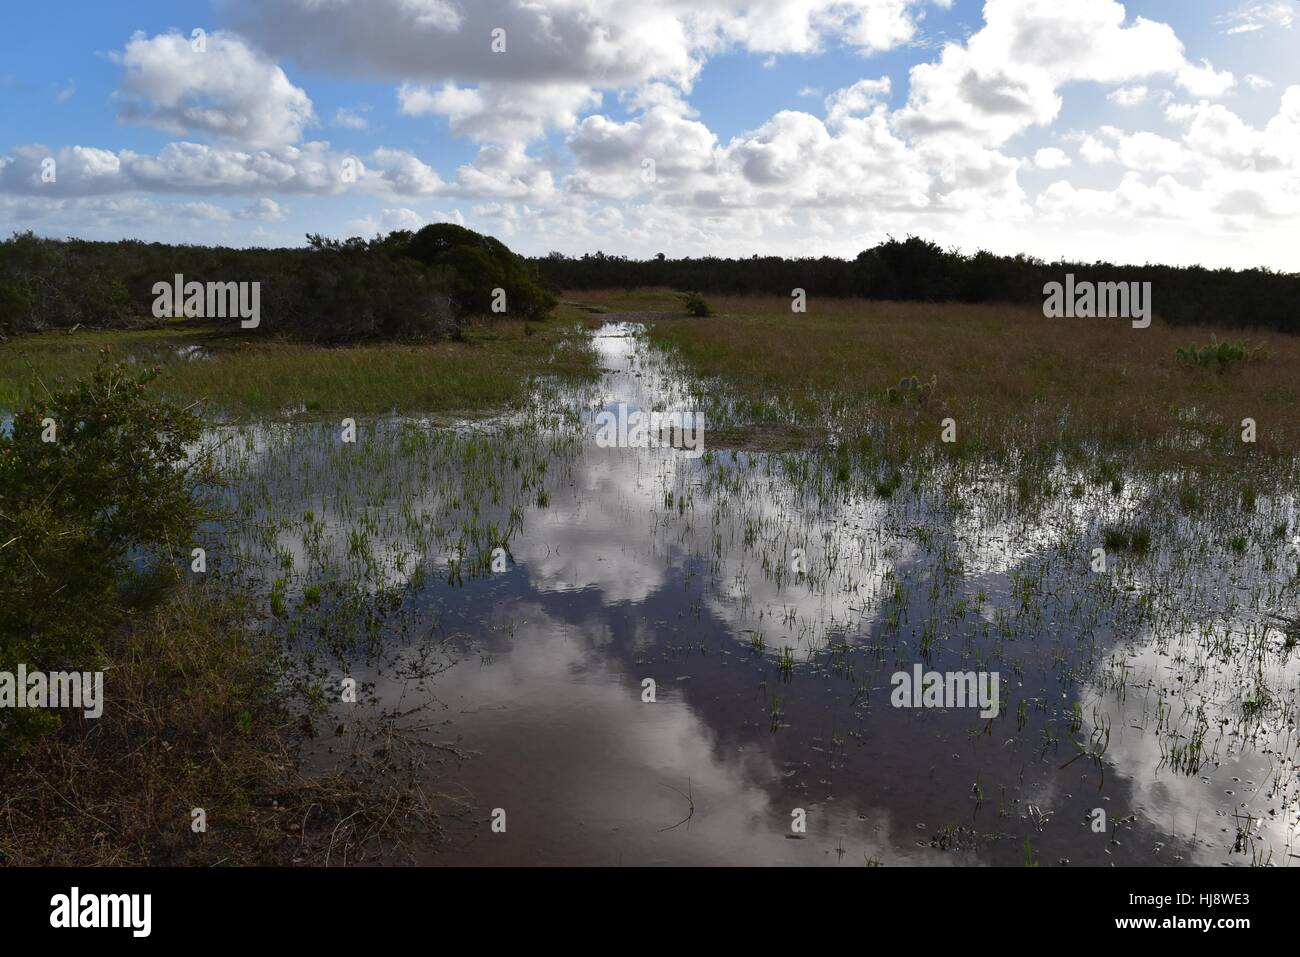 Vernal pools at Del Mar Mesa Open Space Preserve, San Diego, California - Stock Image